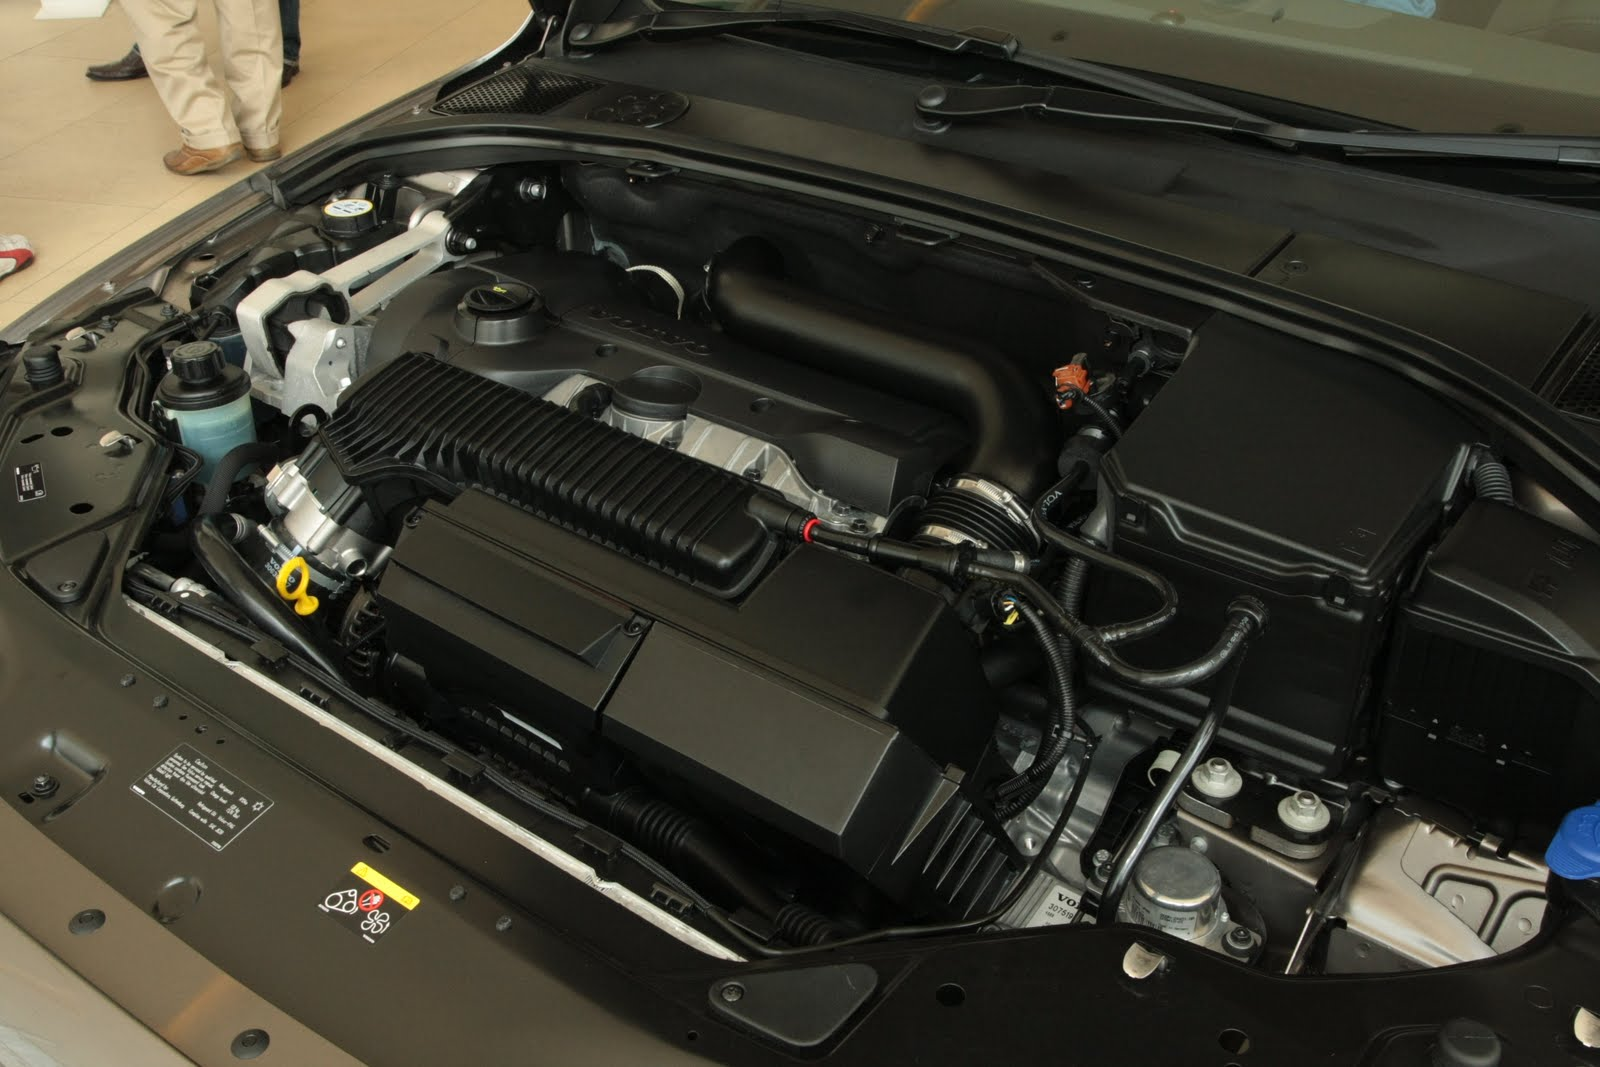 new 2 5 turbo engine there are a lot of differences from the current one here are some of the differences based on engine specs between the new s80